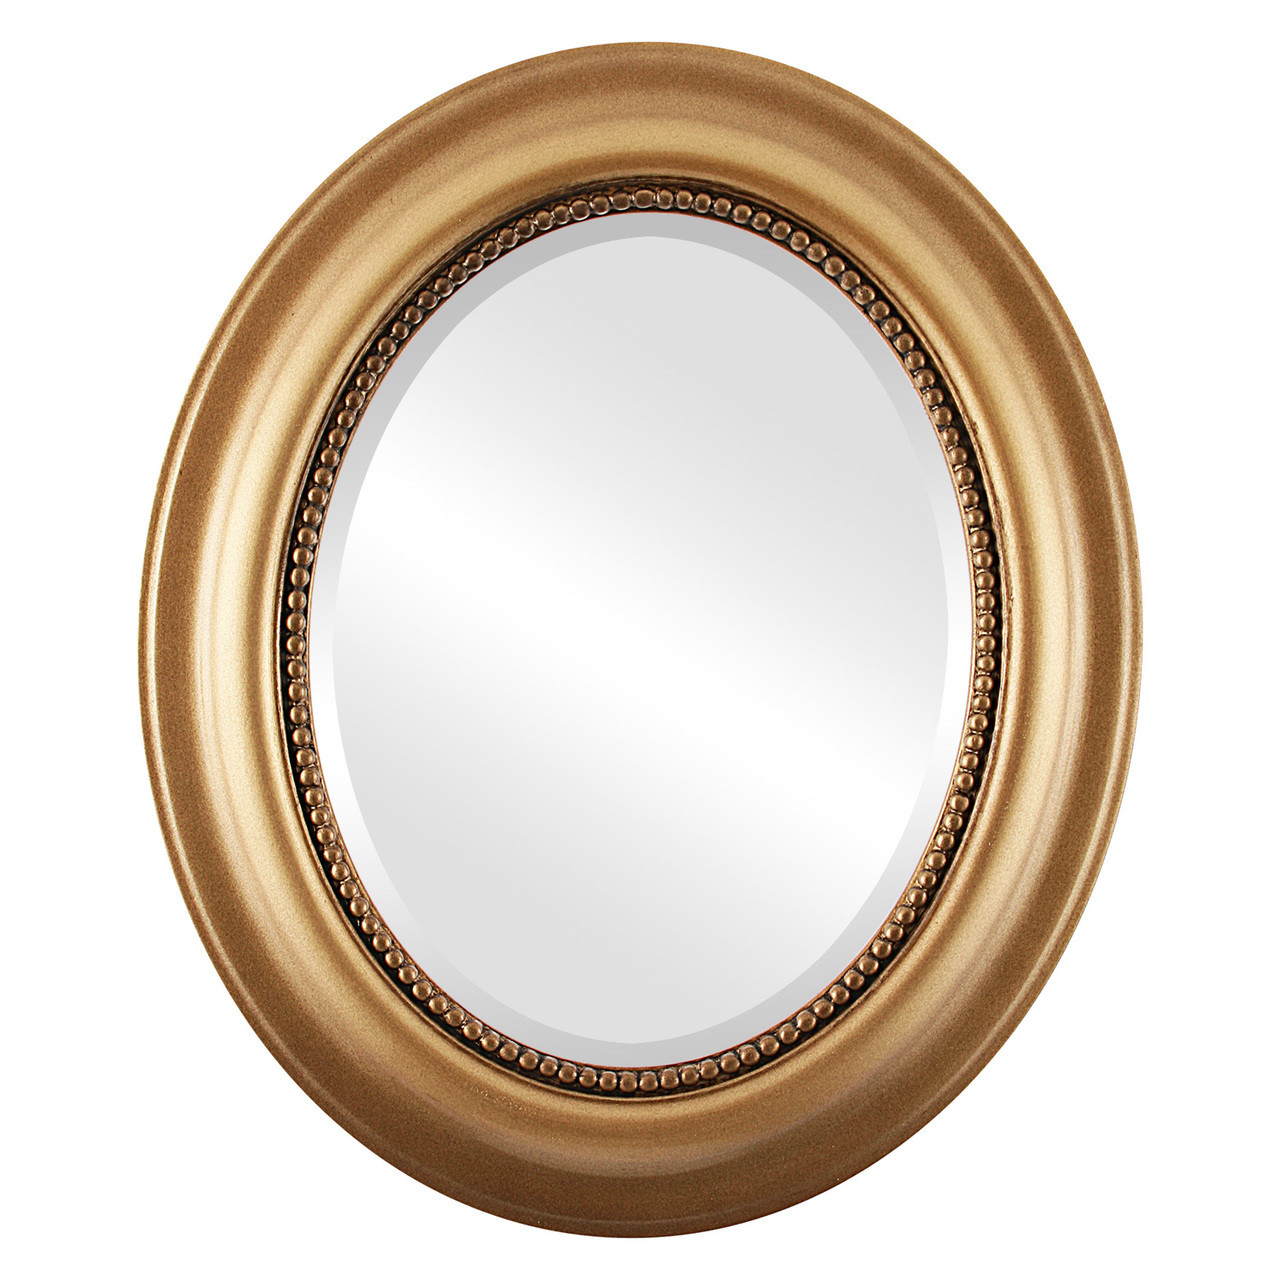 Decorative Gold Oval Mirrors from $146 | Free Shipping